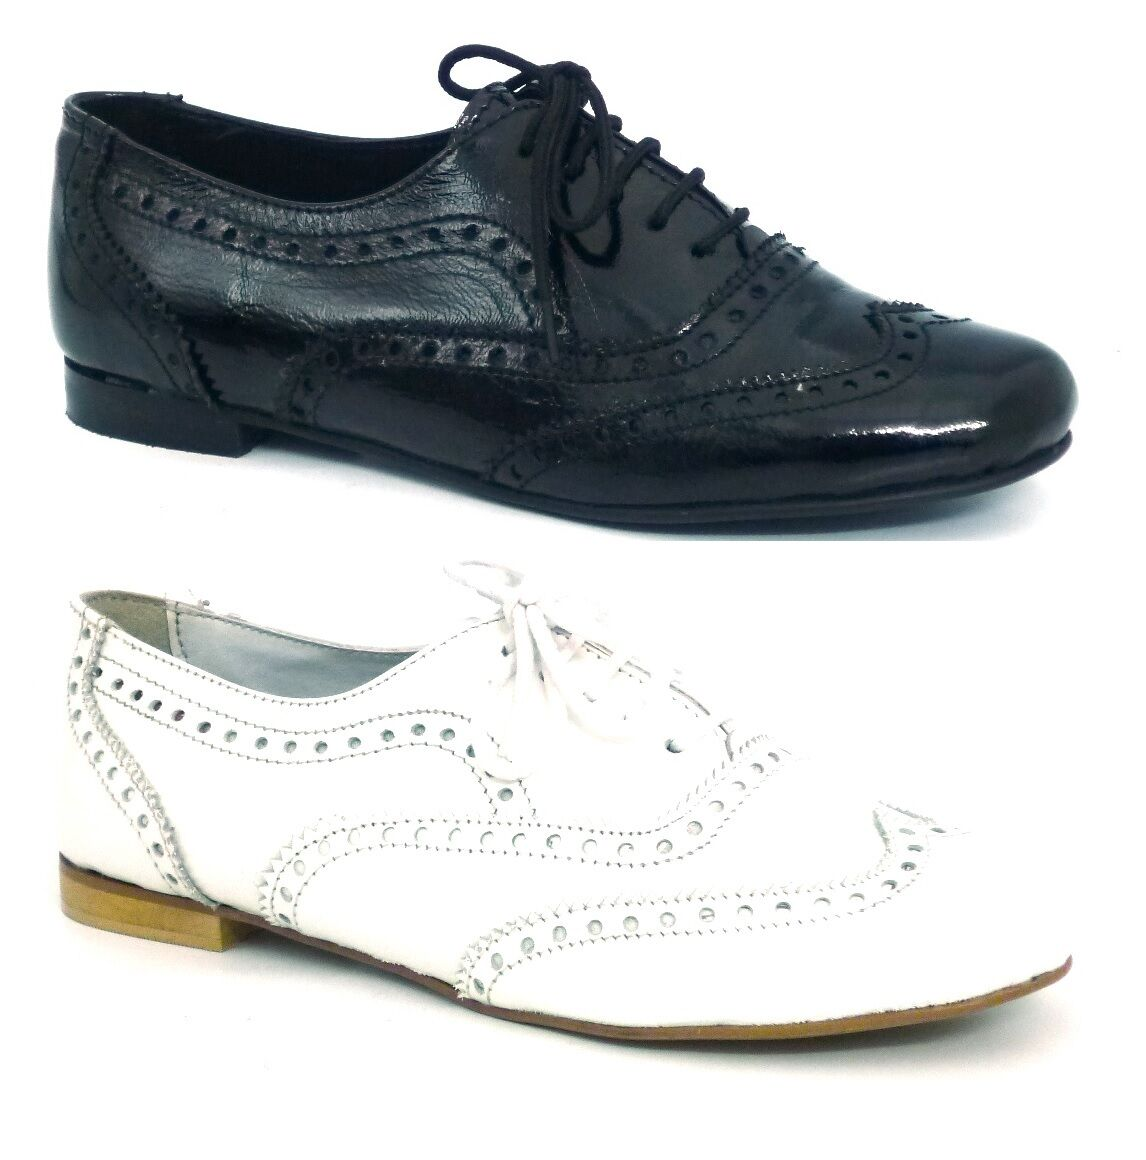 LADIES WOMENS REAL LEATHER BROGUE PATENT FLAT LACE UP PUMPS SHOES LOAFERS SIZE